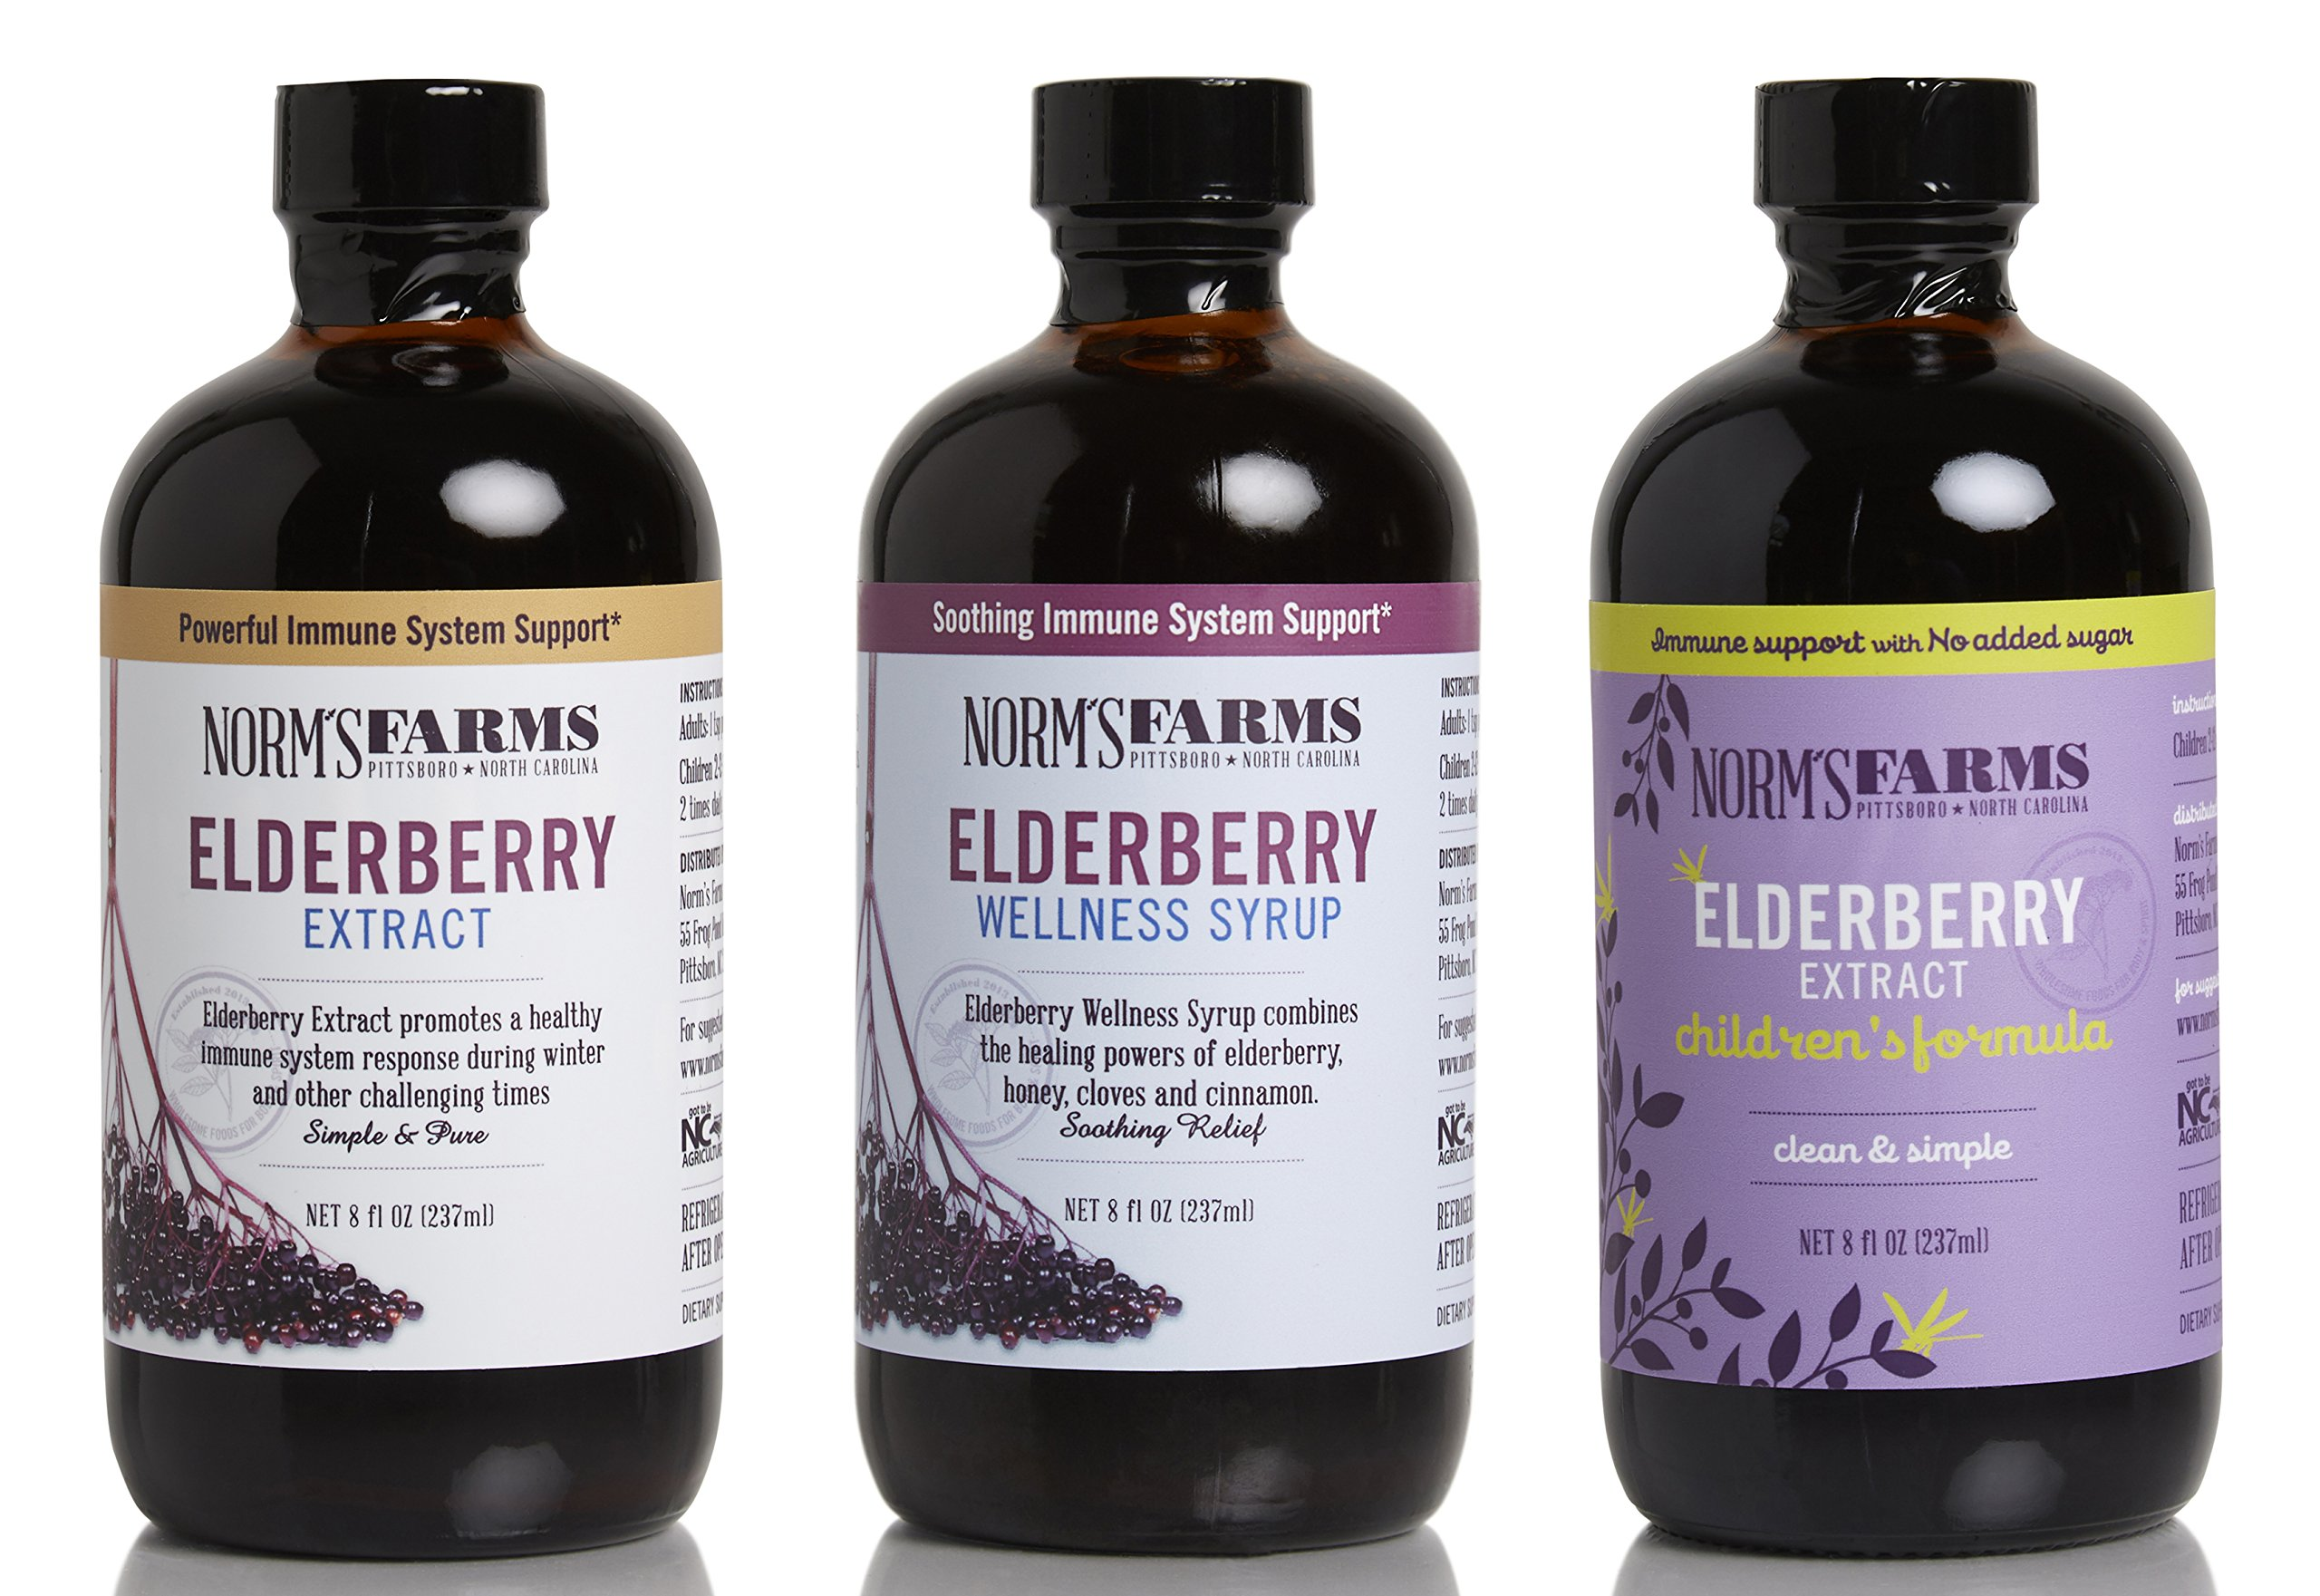 Norm's Farms Family Supplement Pack, Includes 1 Each of Black Elderberry Extract, Wellness Syrup, and Children's Formula